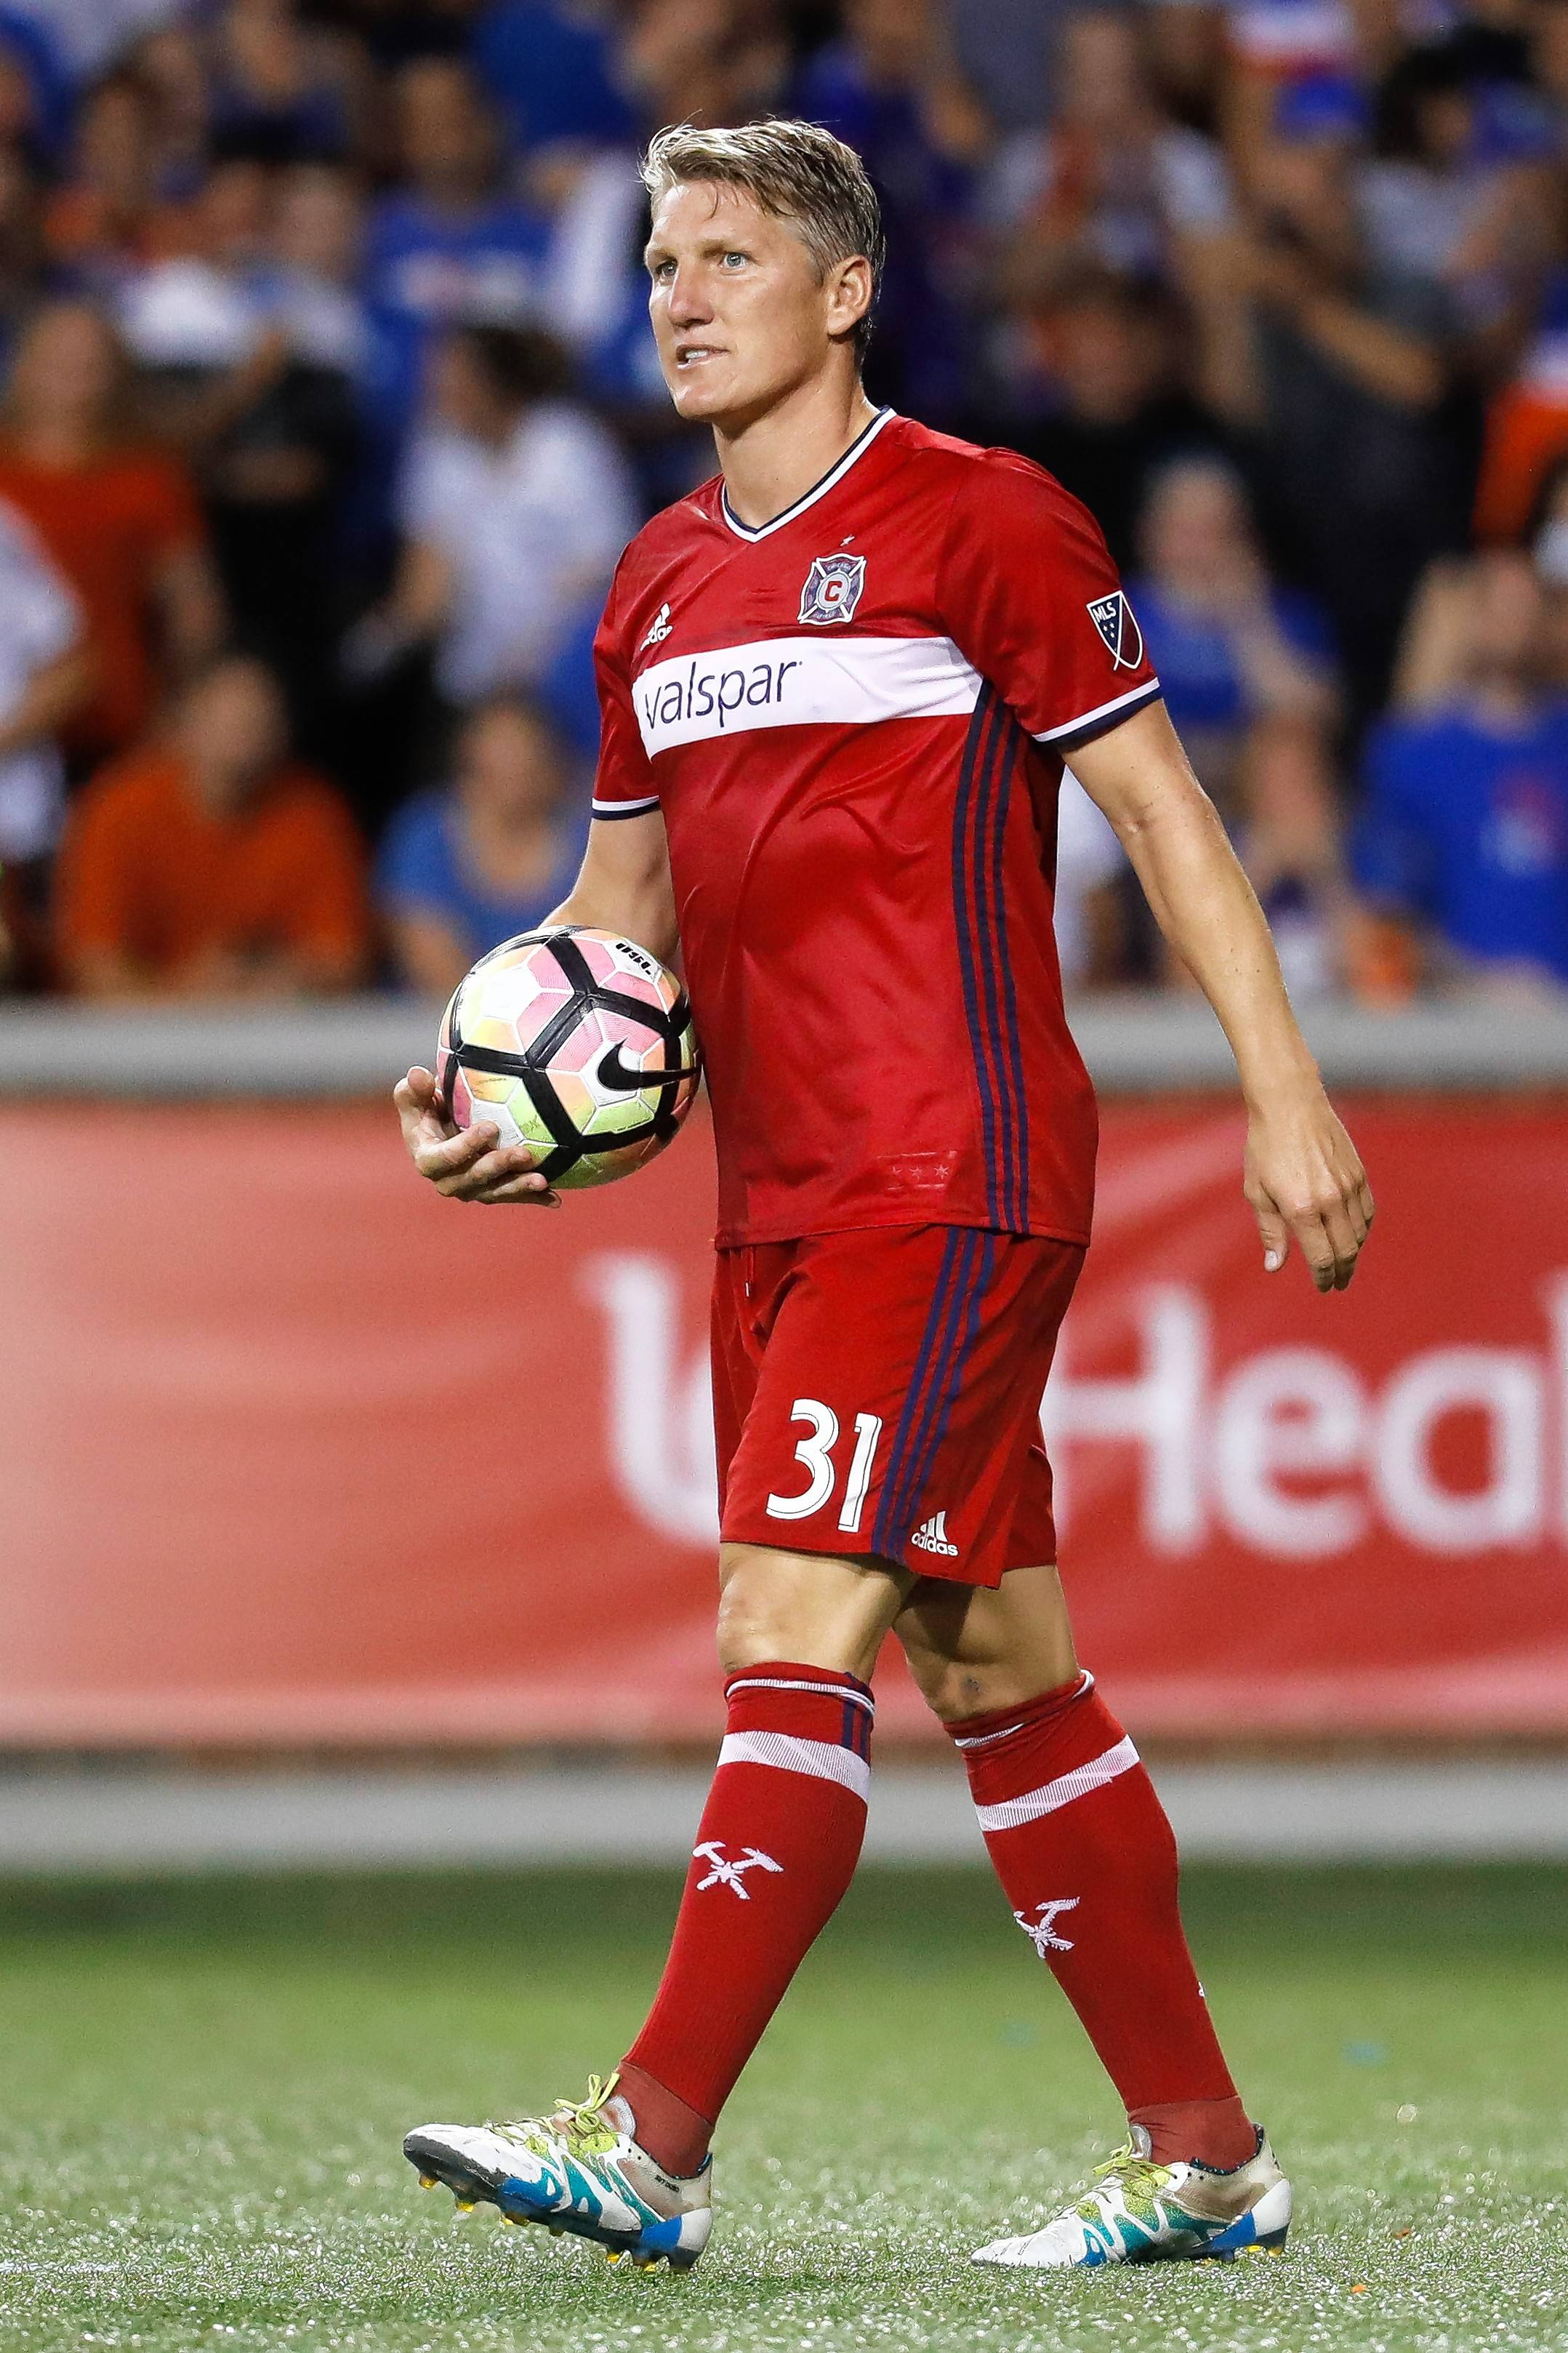 Will Bastian Schweinsteiger return to the Chicago Fire in 2018? That's something they plan to decide after the playoffs.